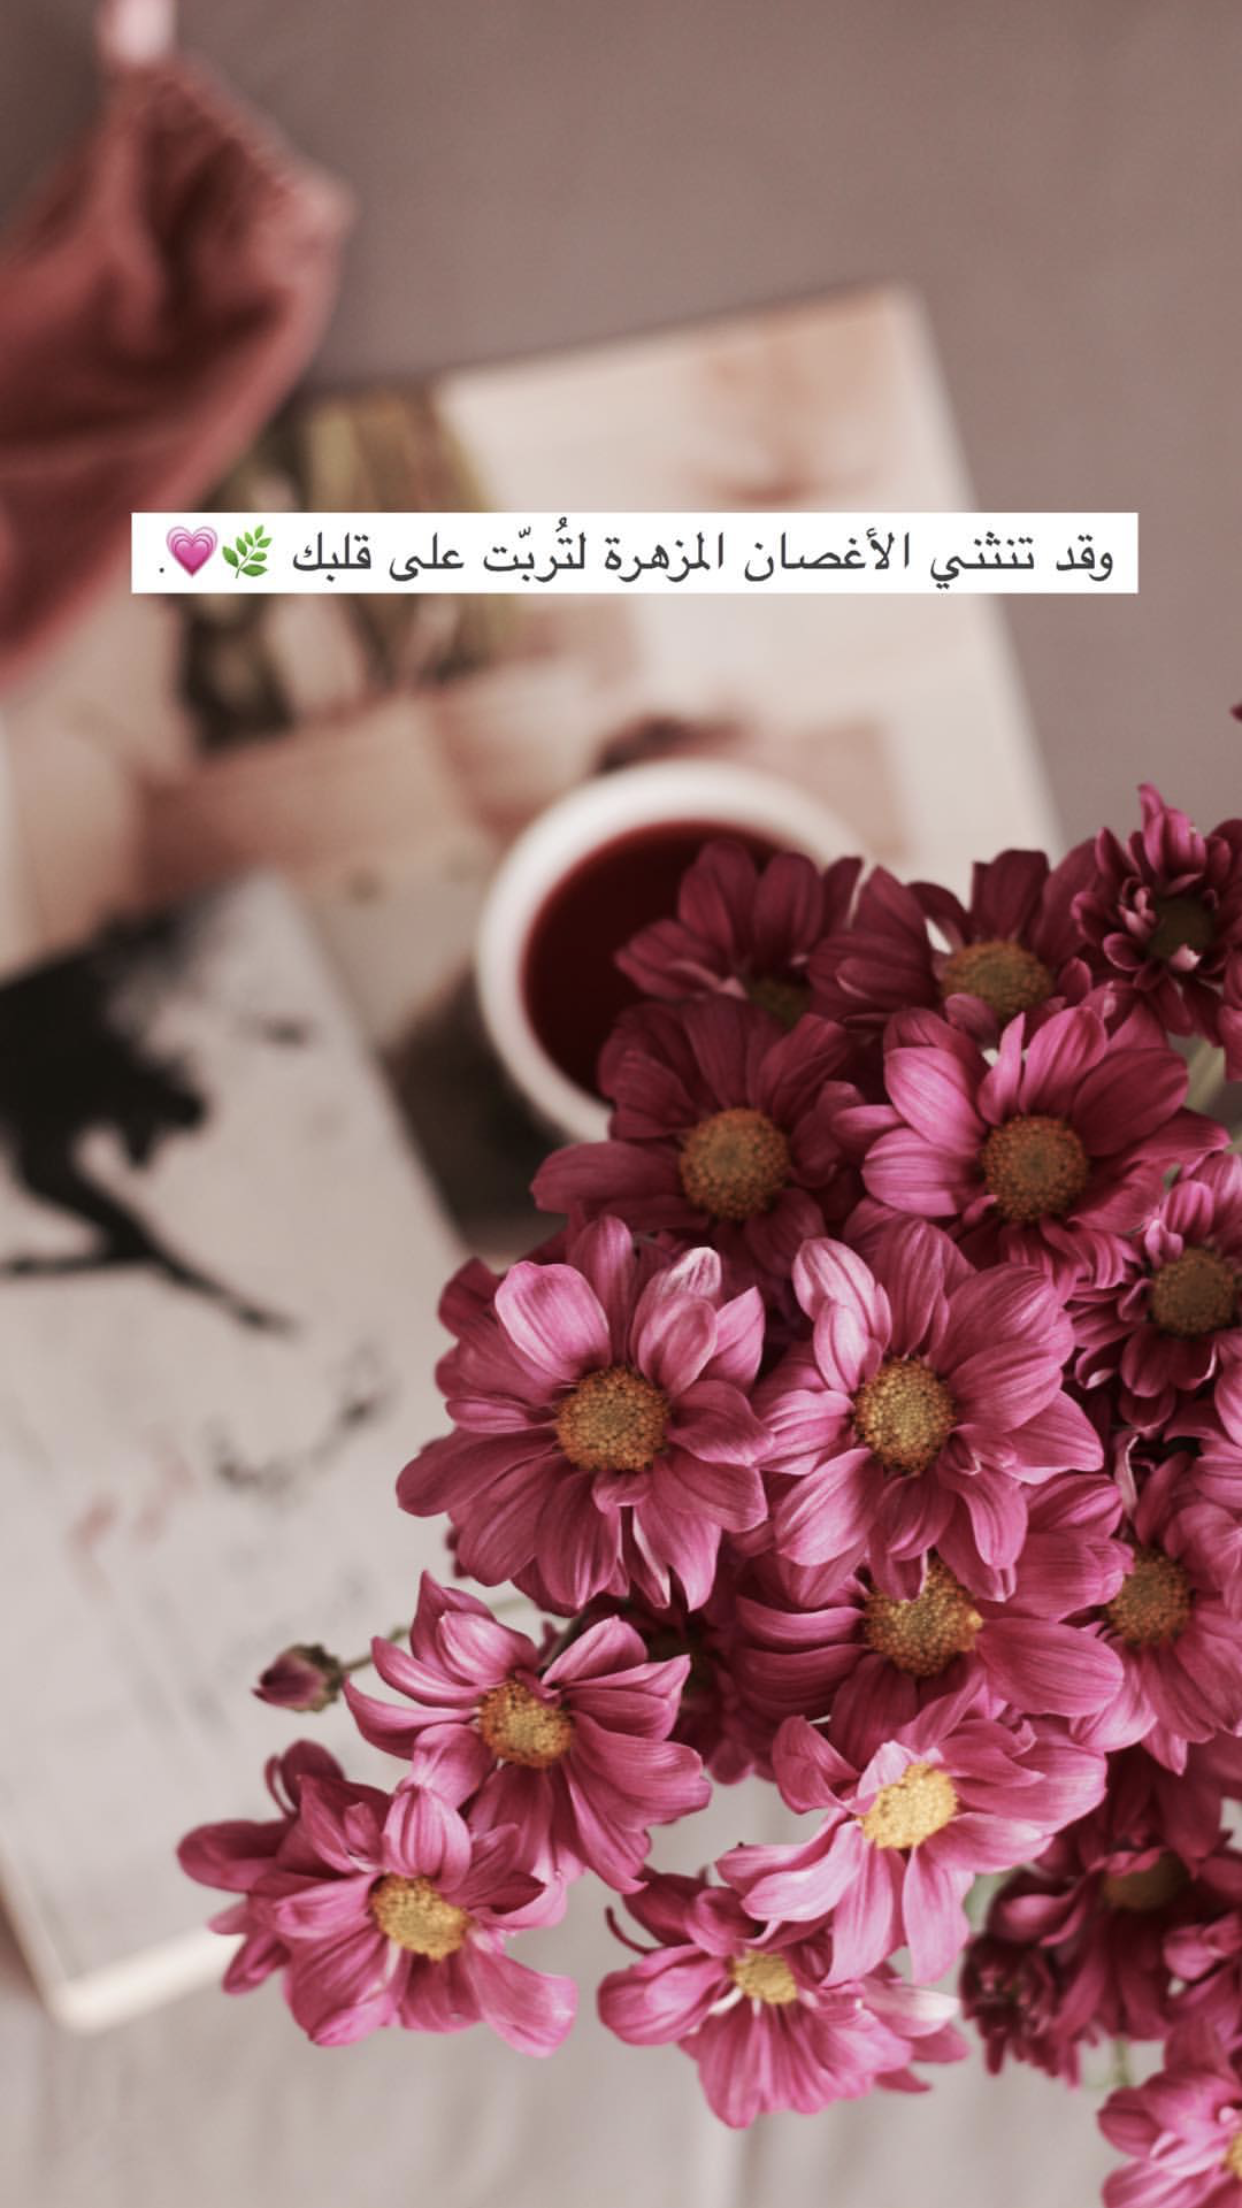 Pin By وليد On مختارات موضي البليهد Arabic Quotes Flower Background Iphone Beautiful Arabic Words